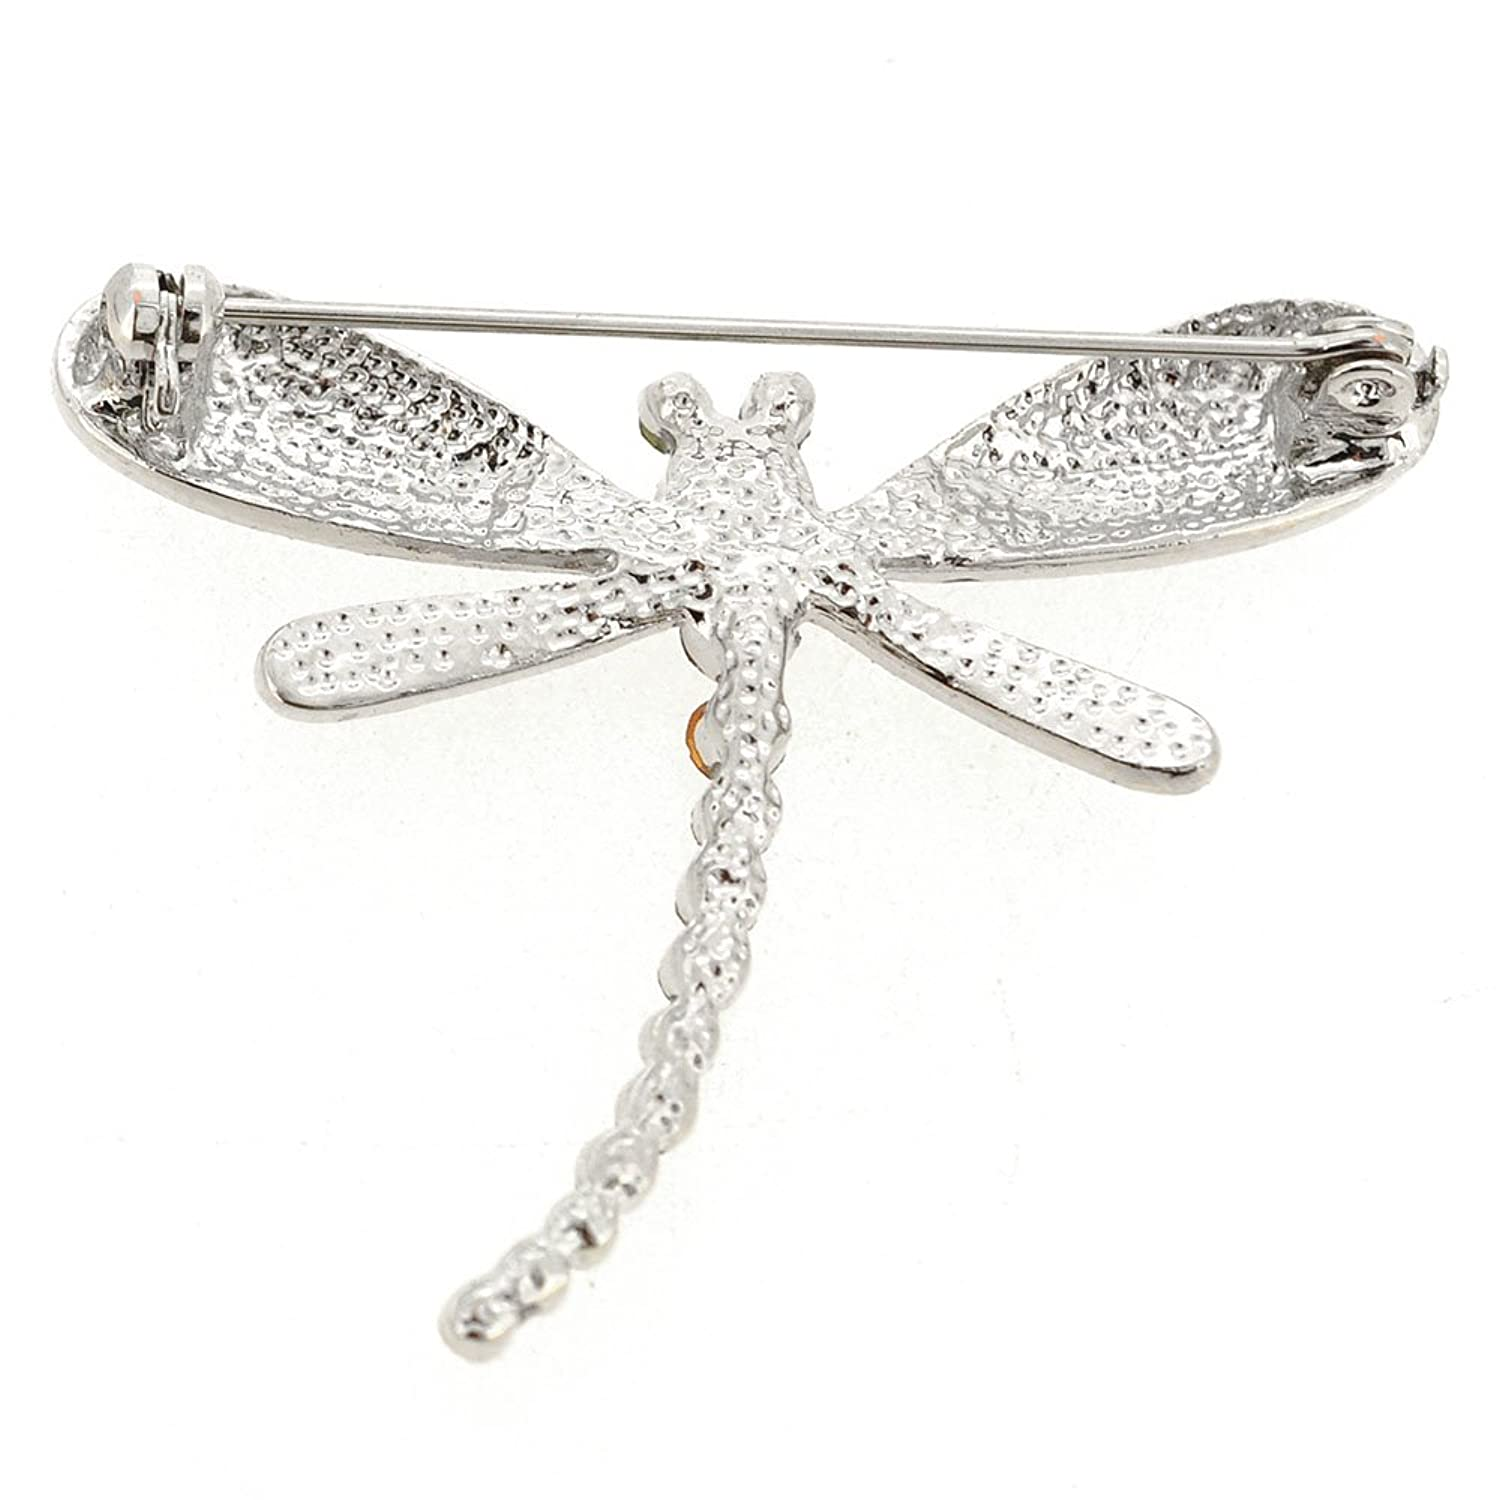 prestigio butterfly brooch jewelry brooches website official farfalla buccellati en spilla